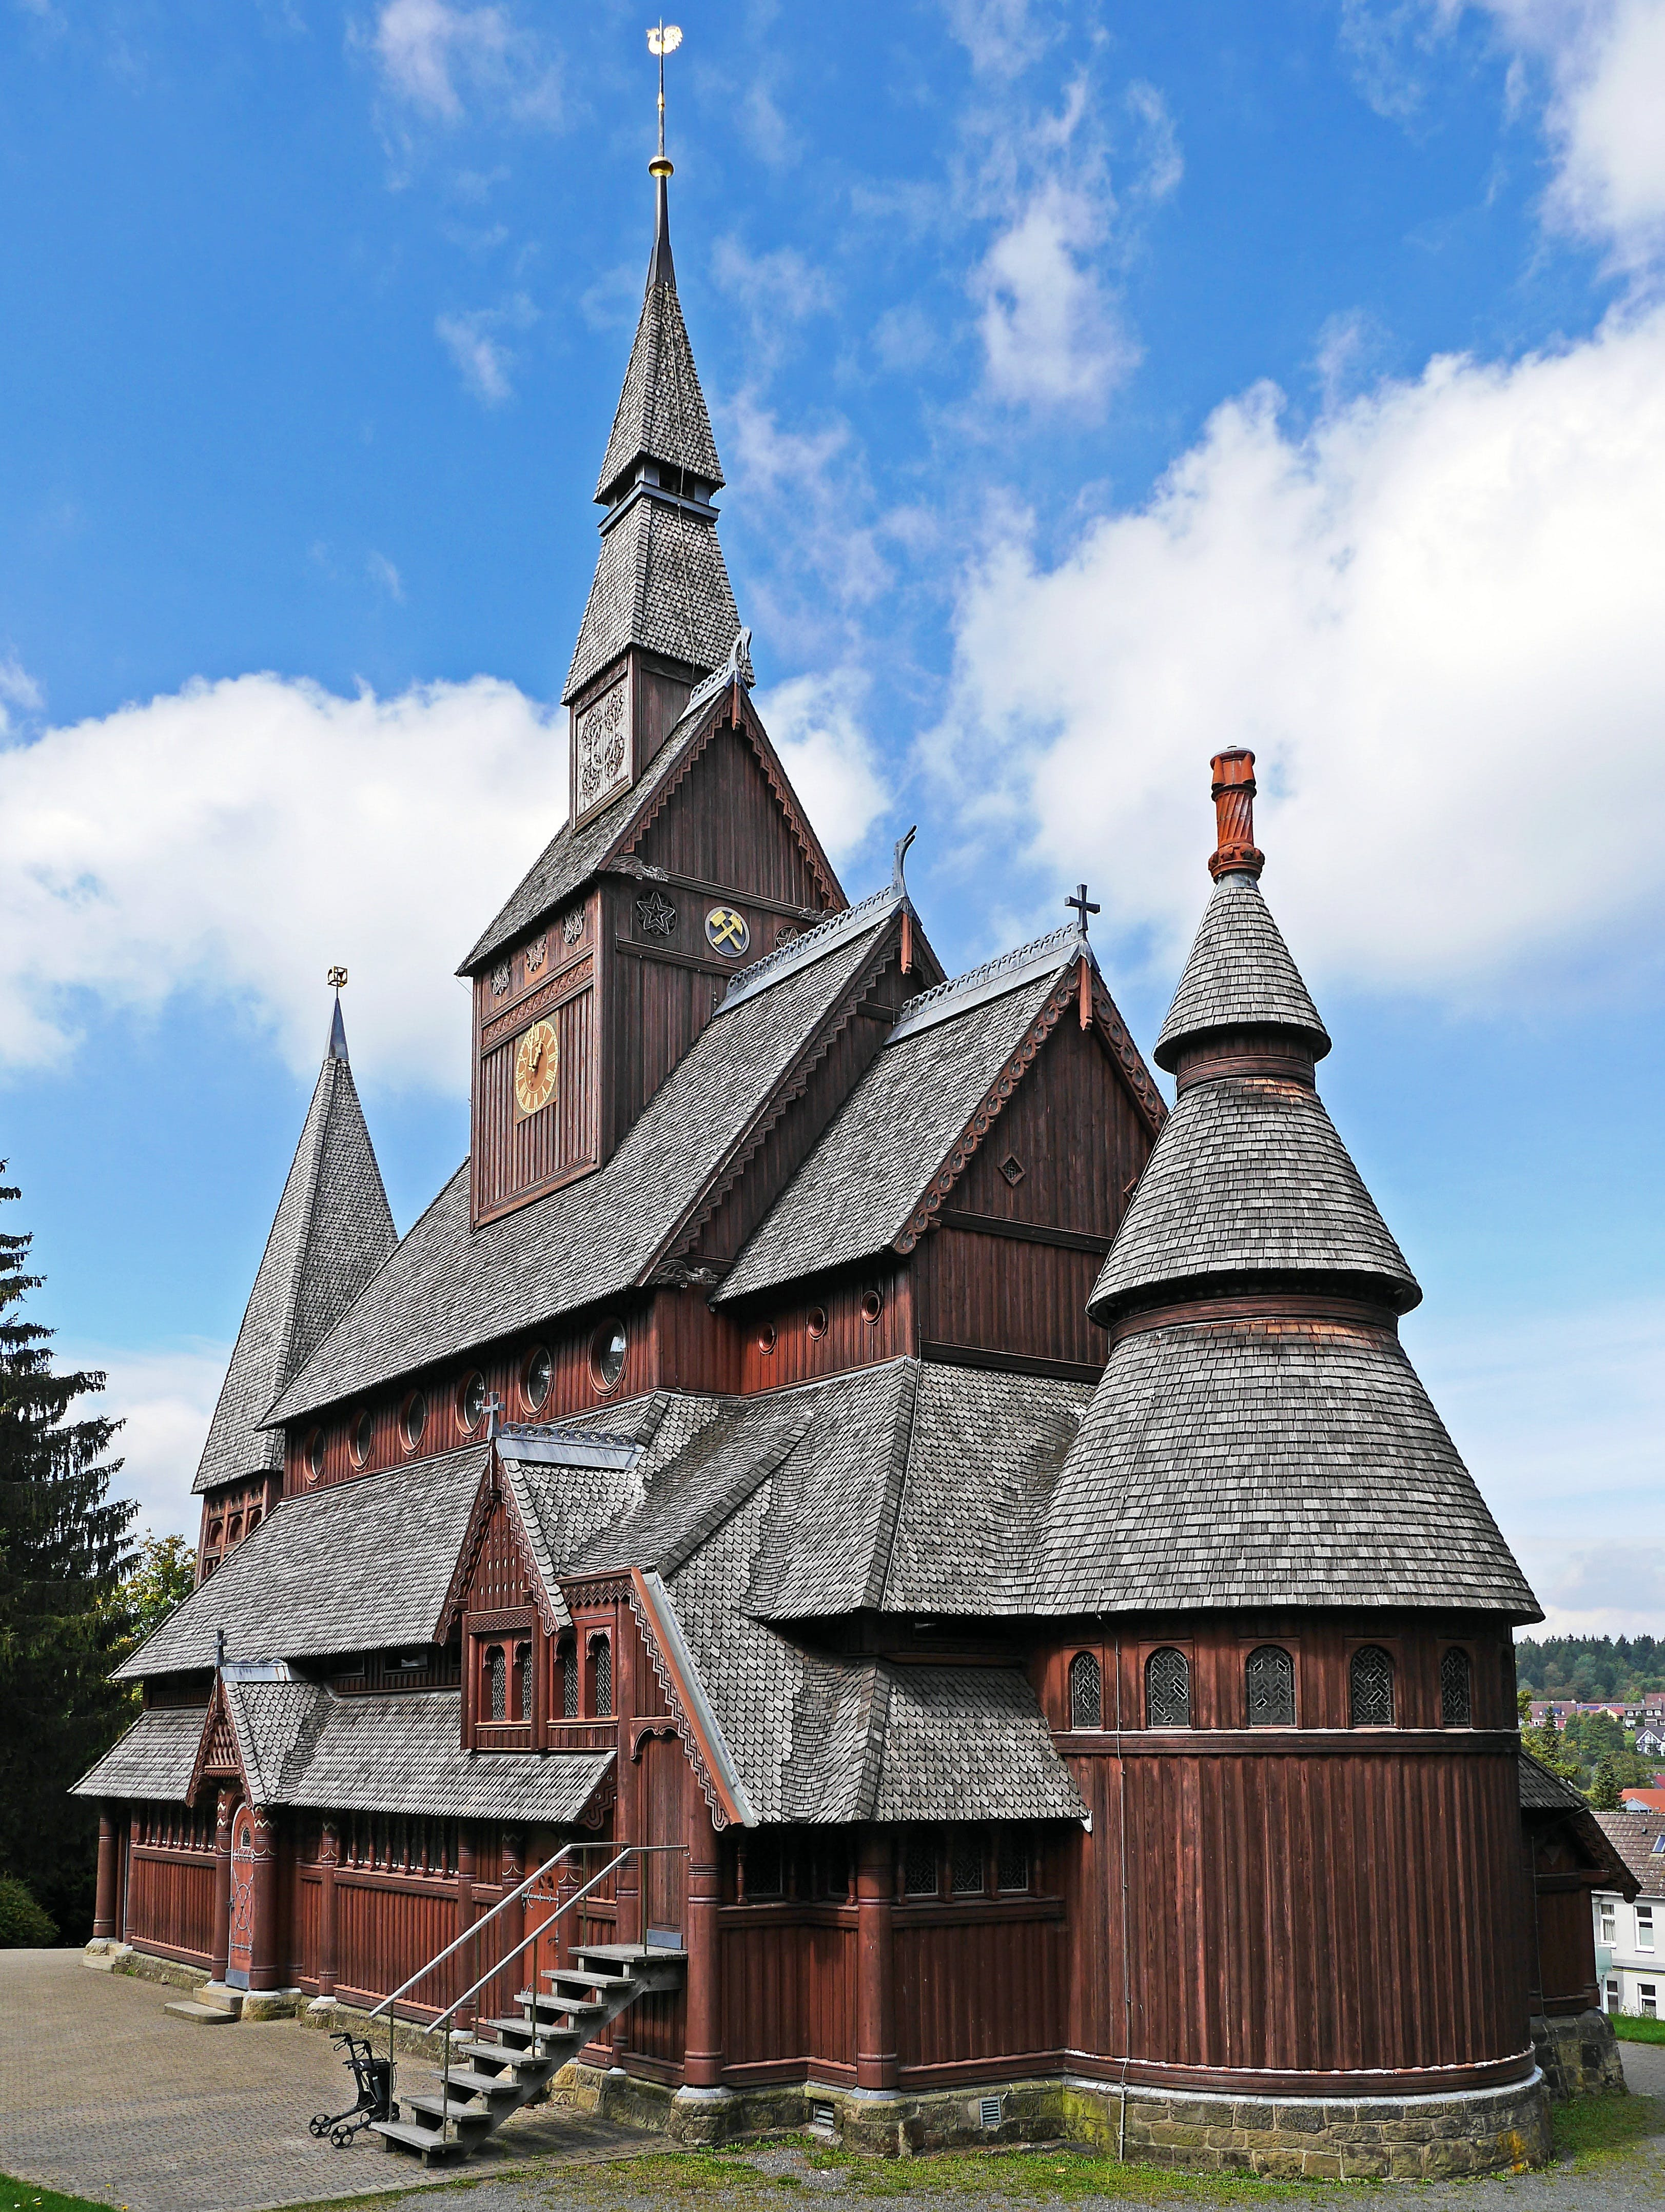 Brown and Grey Wooden Church